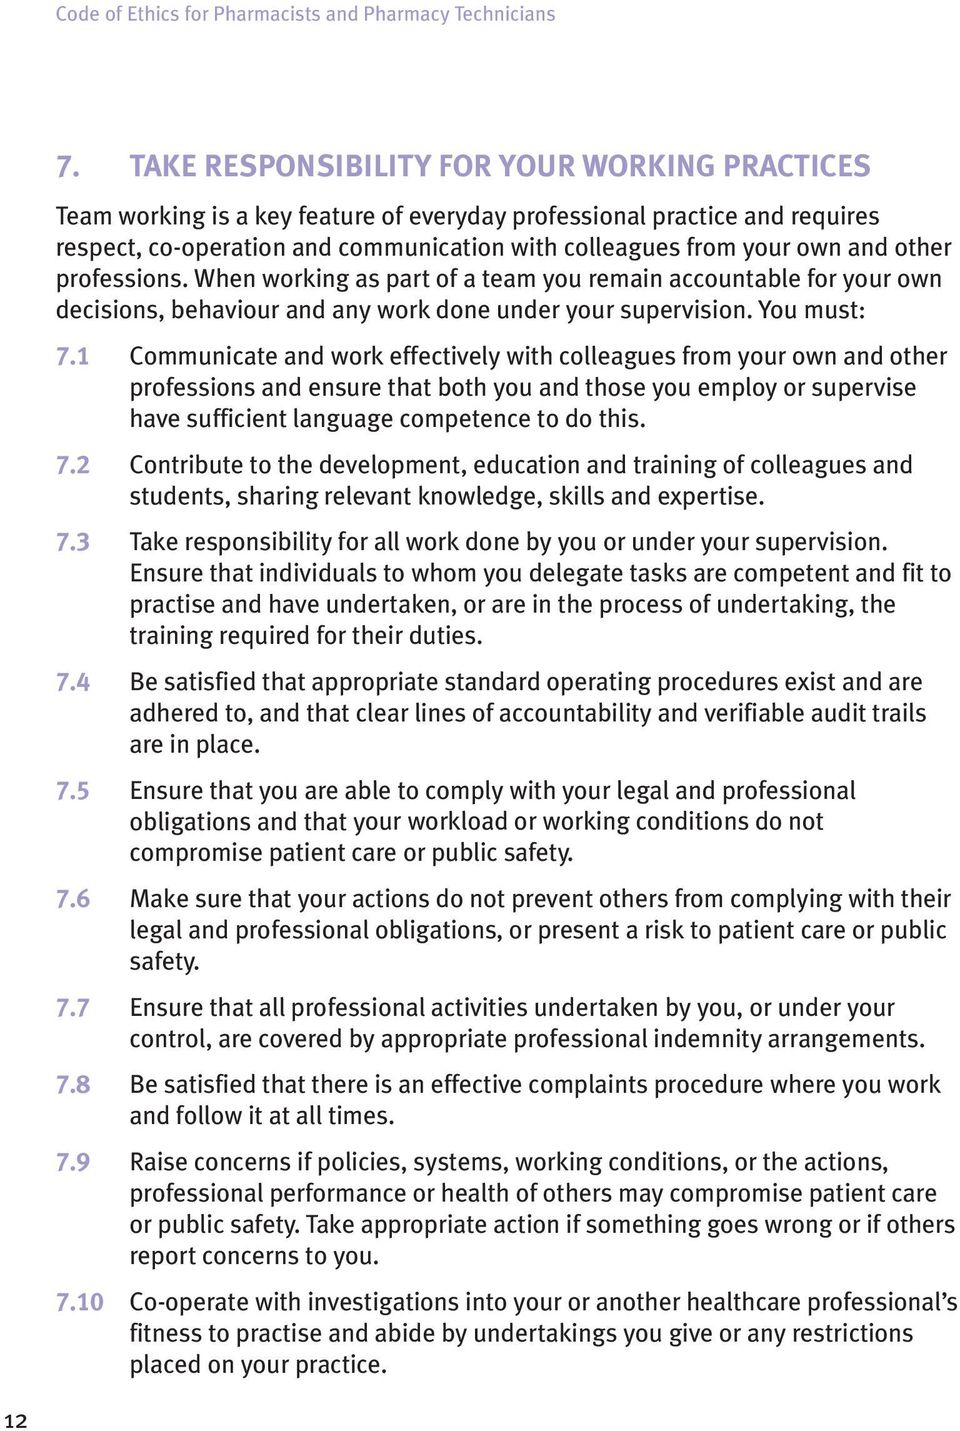 other professions. When working as part of a team you remain accountable for your own decisions, behaviour and any work done under your supervision. You must: 7.